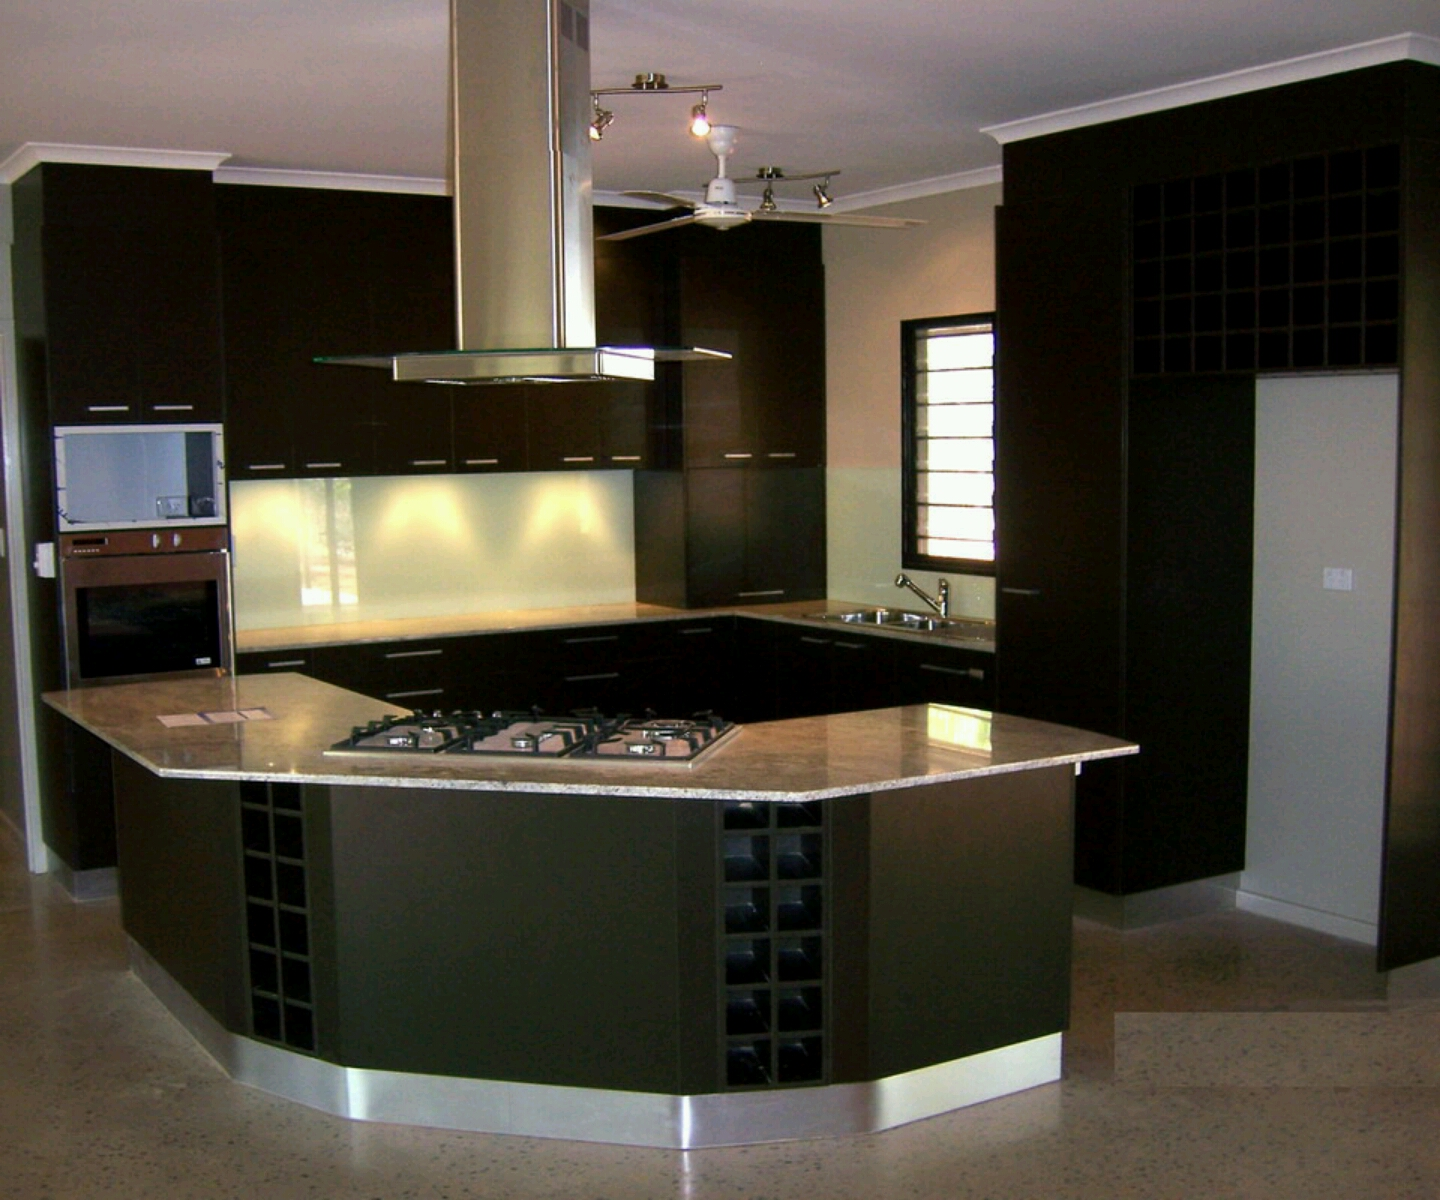 new home designs latest modern kitchen cabinets designs best ideas. Black Bedroom Furniture Sets. Home Design Ideas